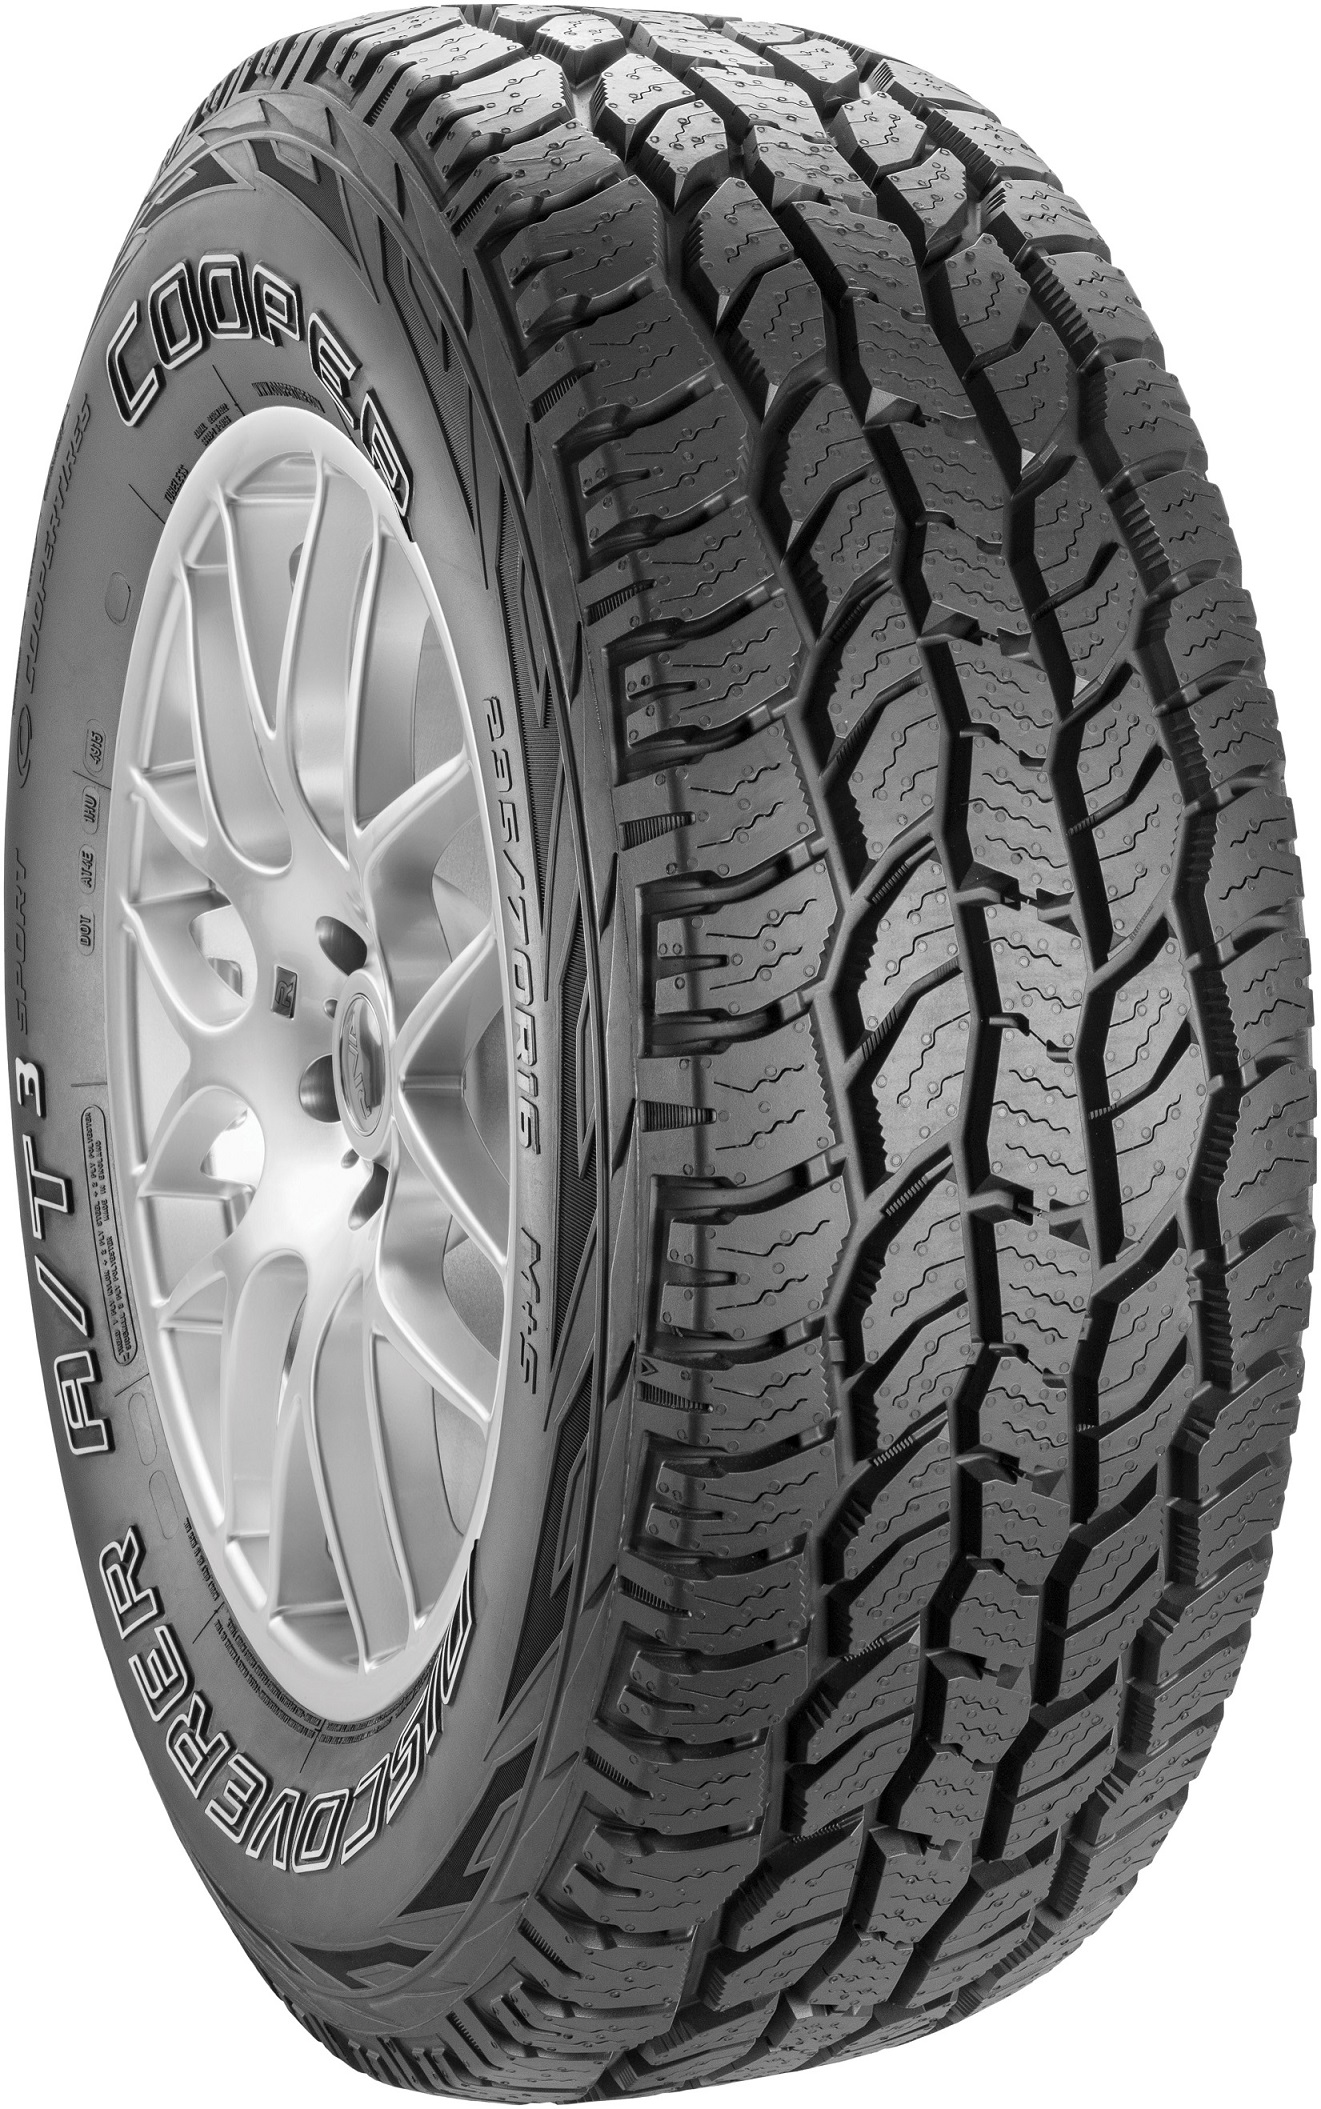 Gomme 4x4 Suv Cooper Tyres 255/70 R15 108T DISCOVERER A/T3 SPORT All Season